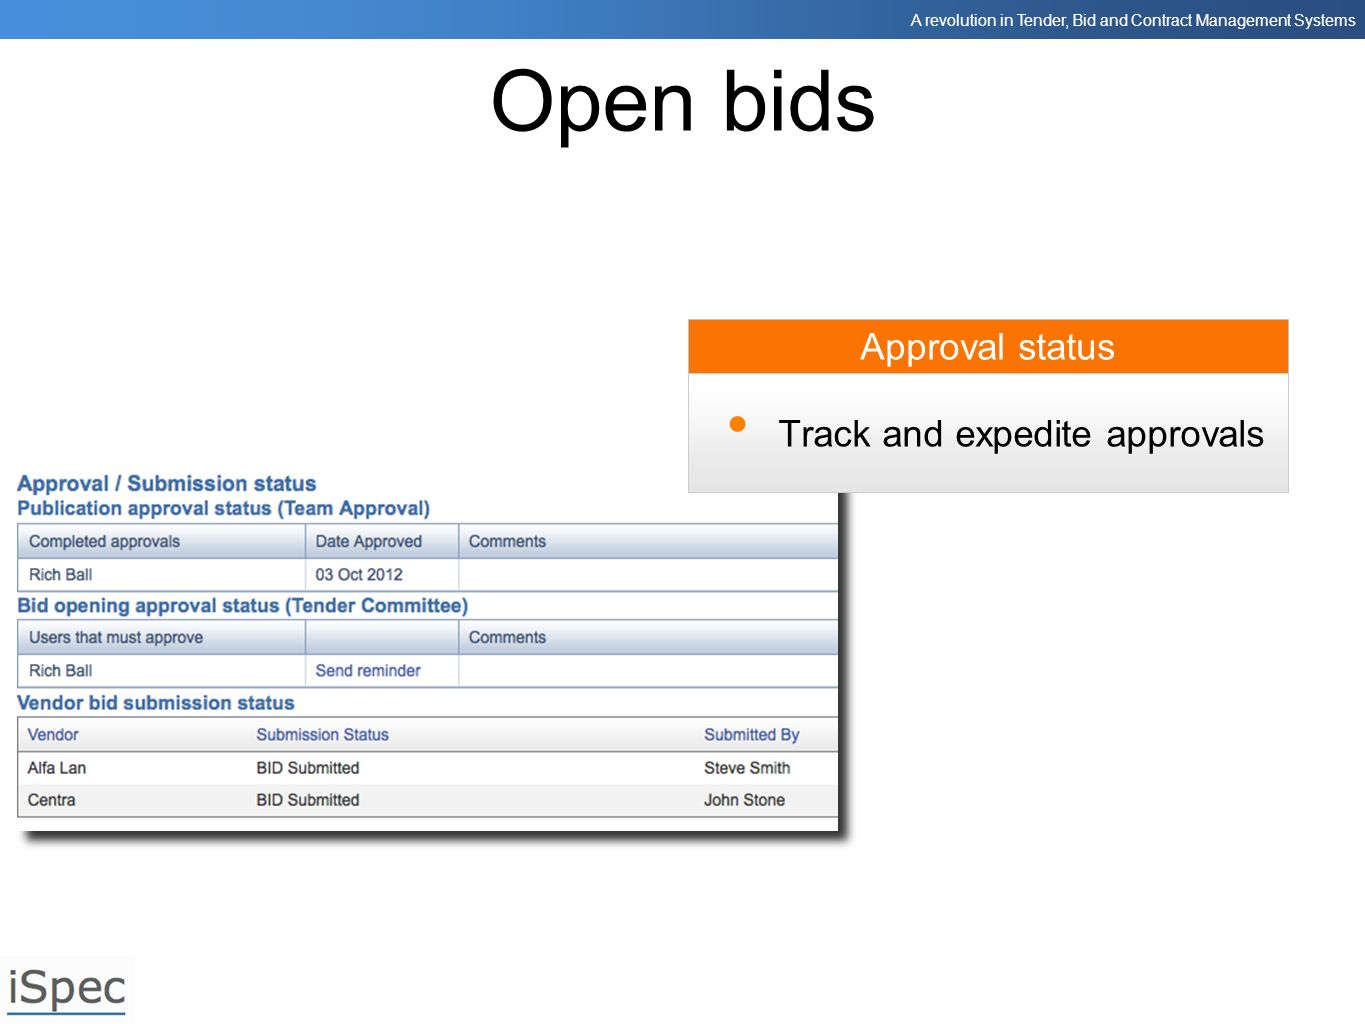 A revolution in Tender, Bid and Contract Management Systems Approval status Open bids Track and expedite approvals